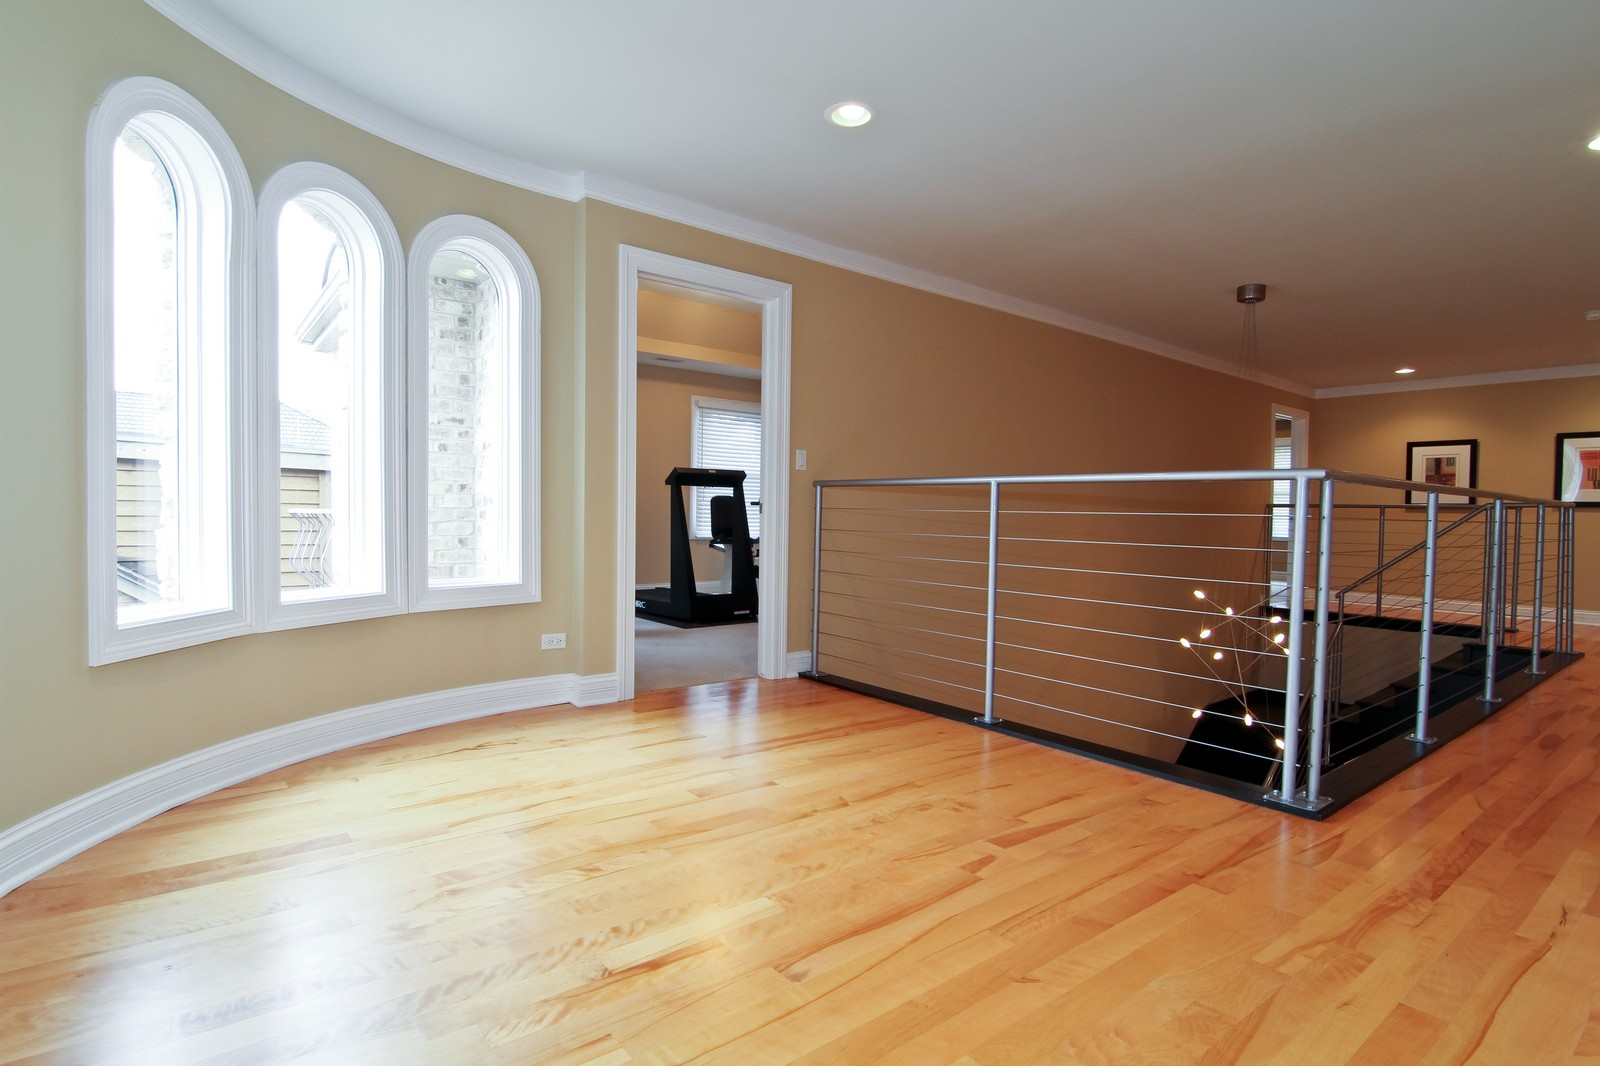 Real Estate Photography - 550 S Linden Ave, Elmhurst, IL, 60126 - 2nd Level